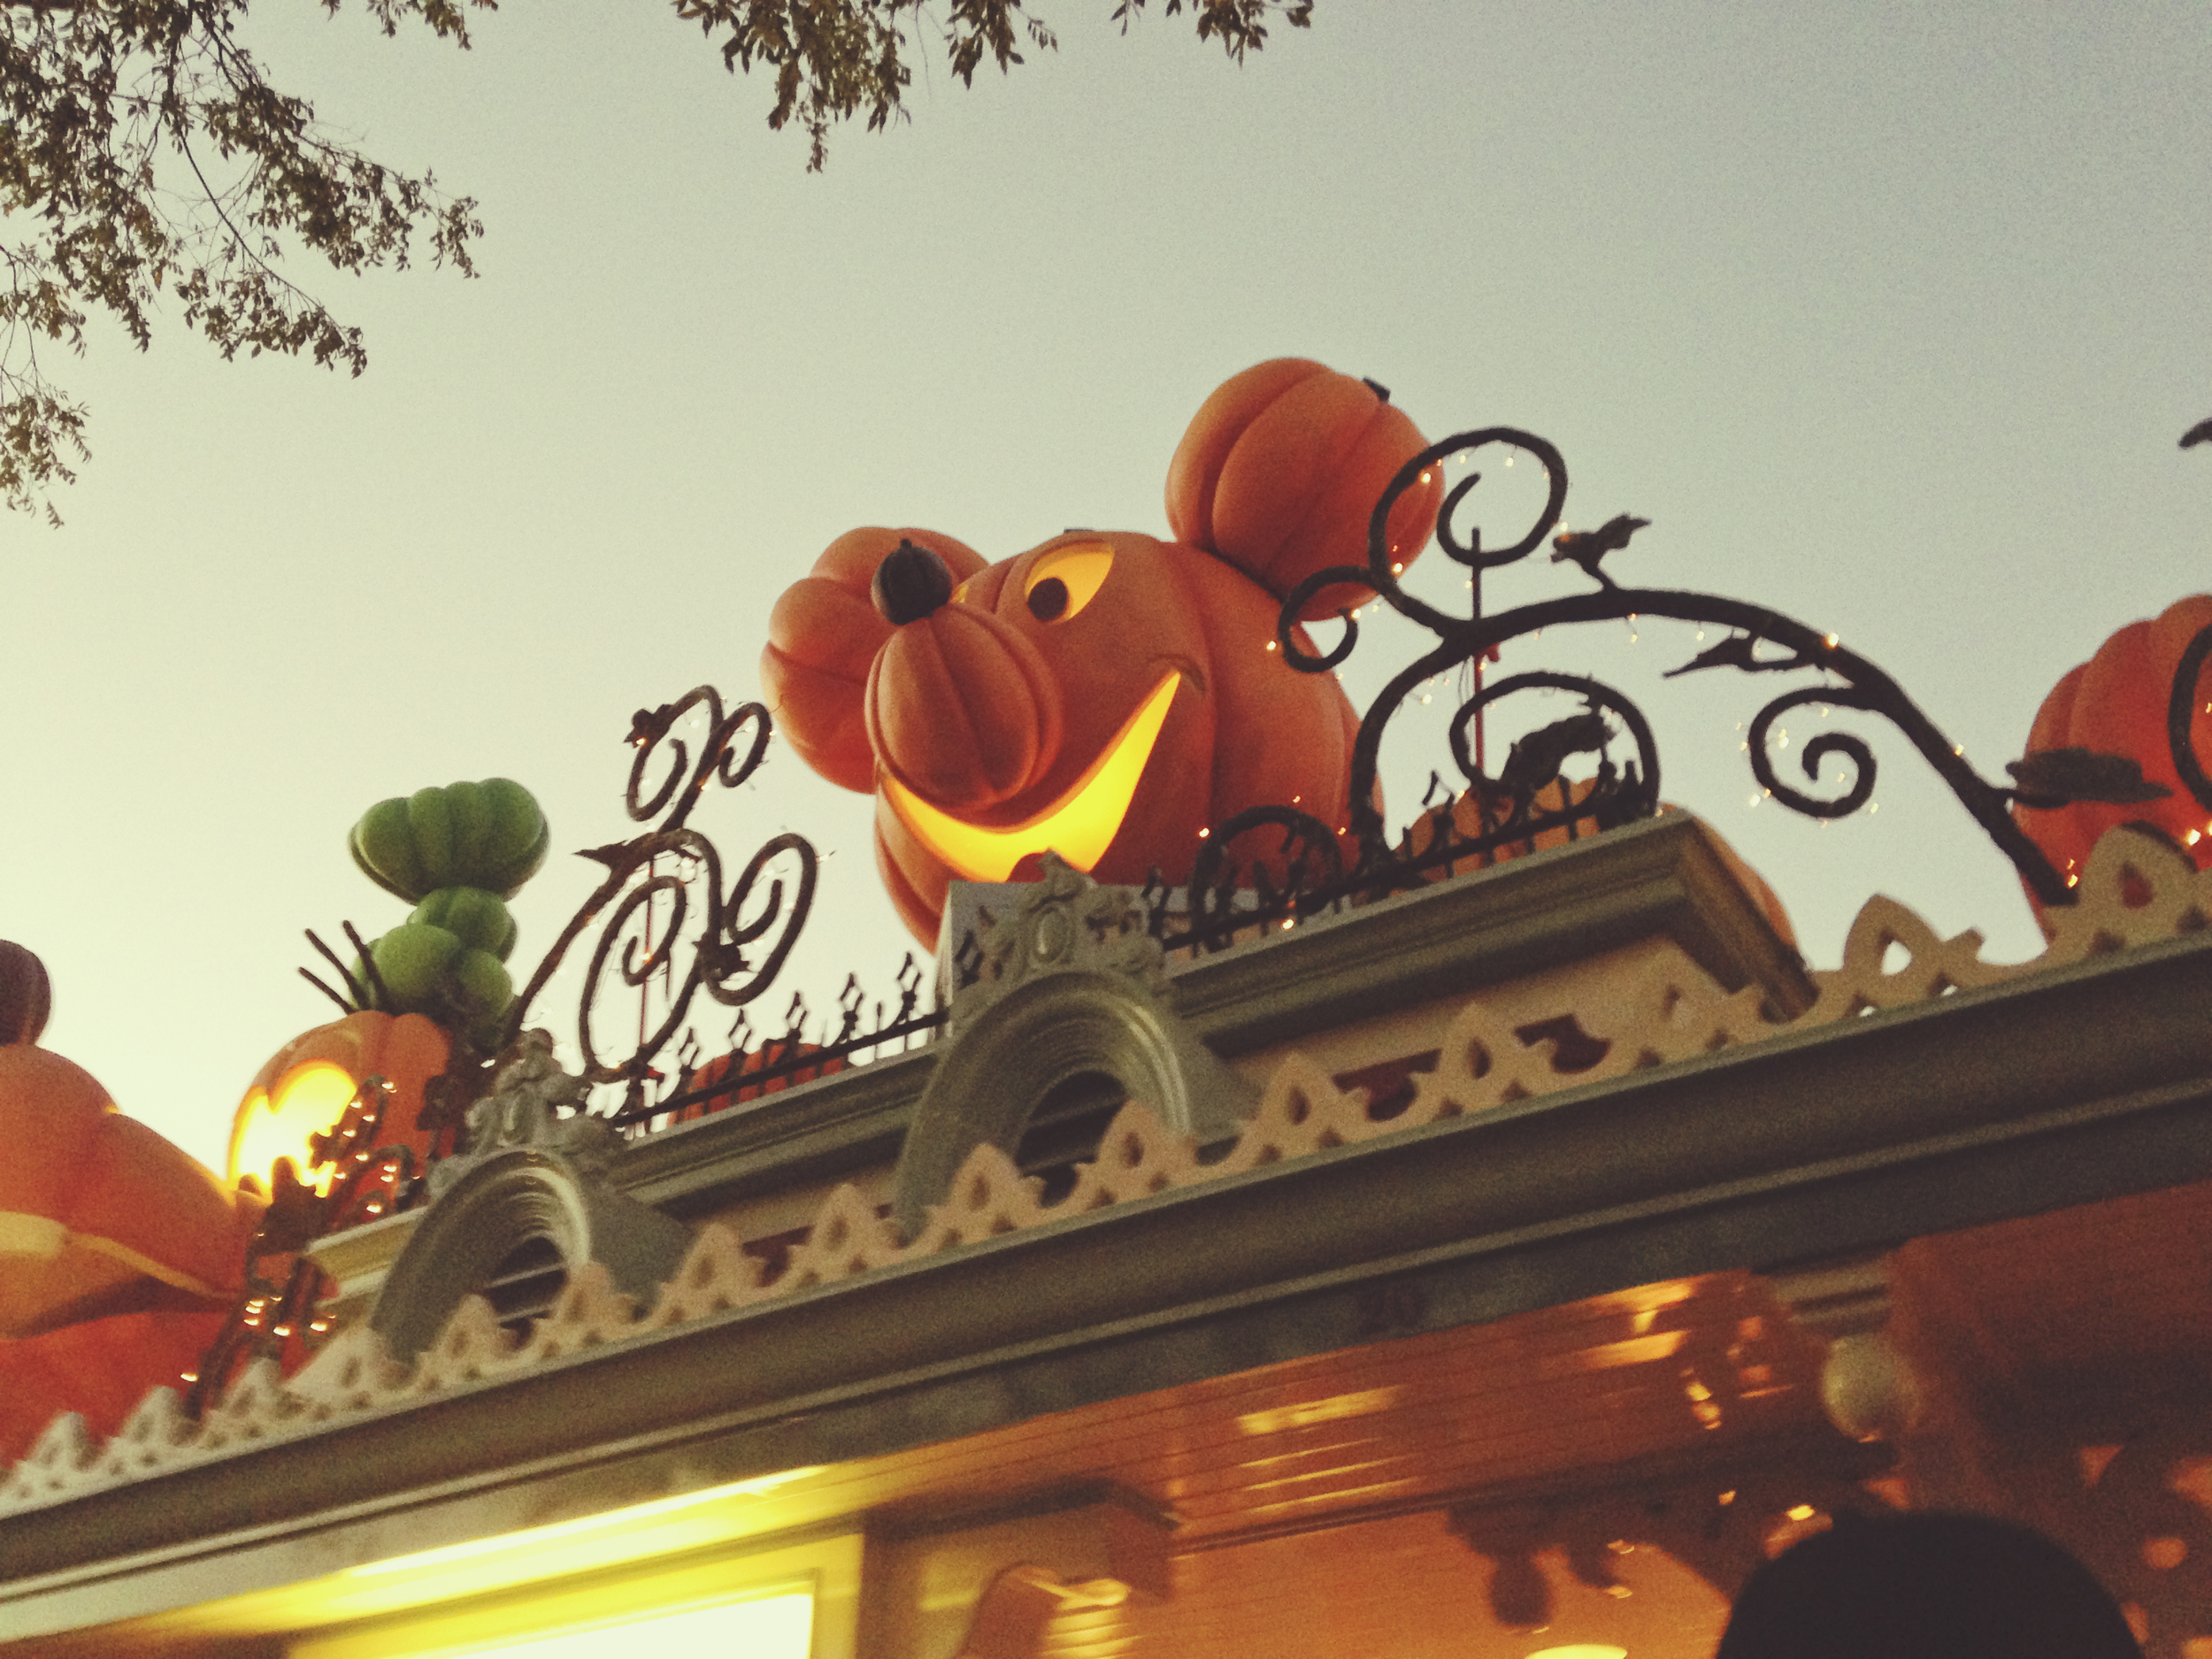 We got to briefly check out the Halloween decorations. They'll probably be swapped for Christmas decorations by the time we get back here!